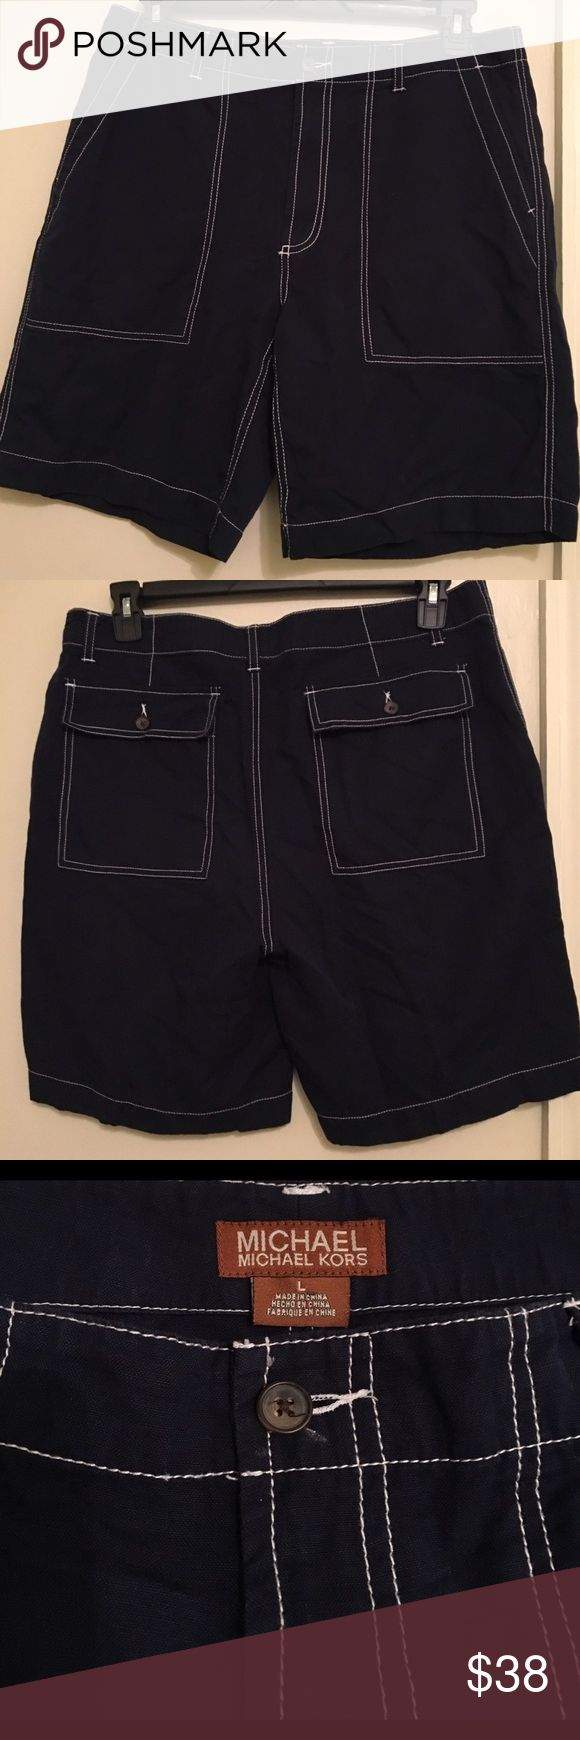 MICHAEL Michael Kors Men's Shorts/Swimming Trunks. MICHAEL Michael Kors Men's Shorts/Swimming Trunks. Great Condition. Dark blue with White Stitching. ⭐️Thank you for stopping by⭐️Next day shipping⭐️No trade⭐️Bundle⭐️Feel free to ask any questions. MICHAEL Michael Kors Shorts